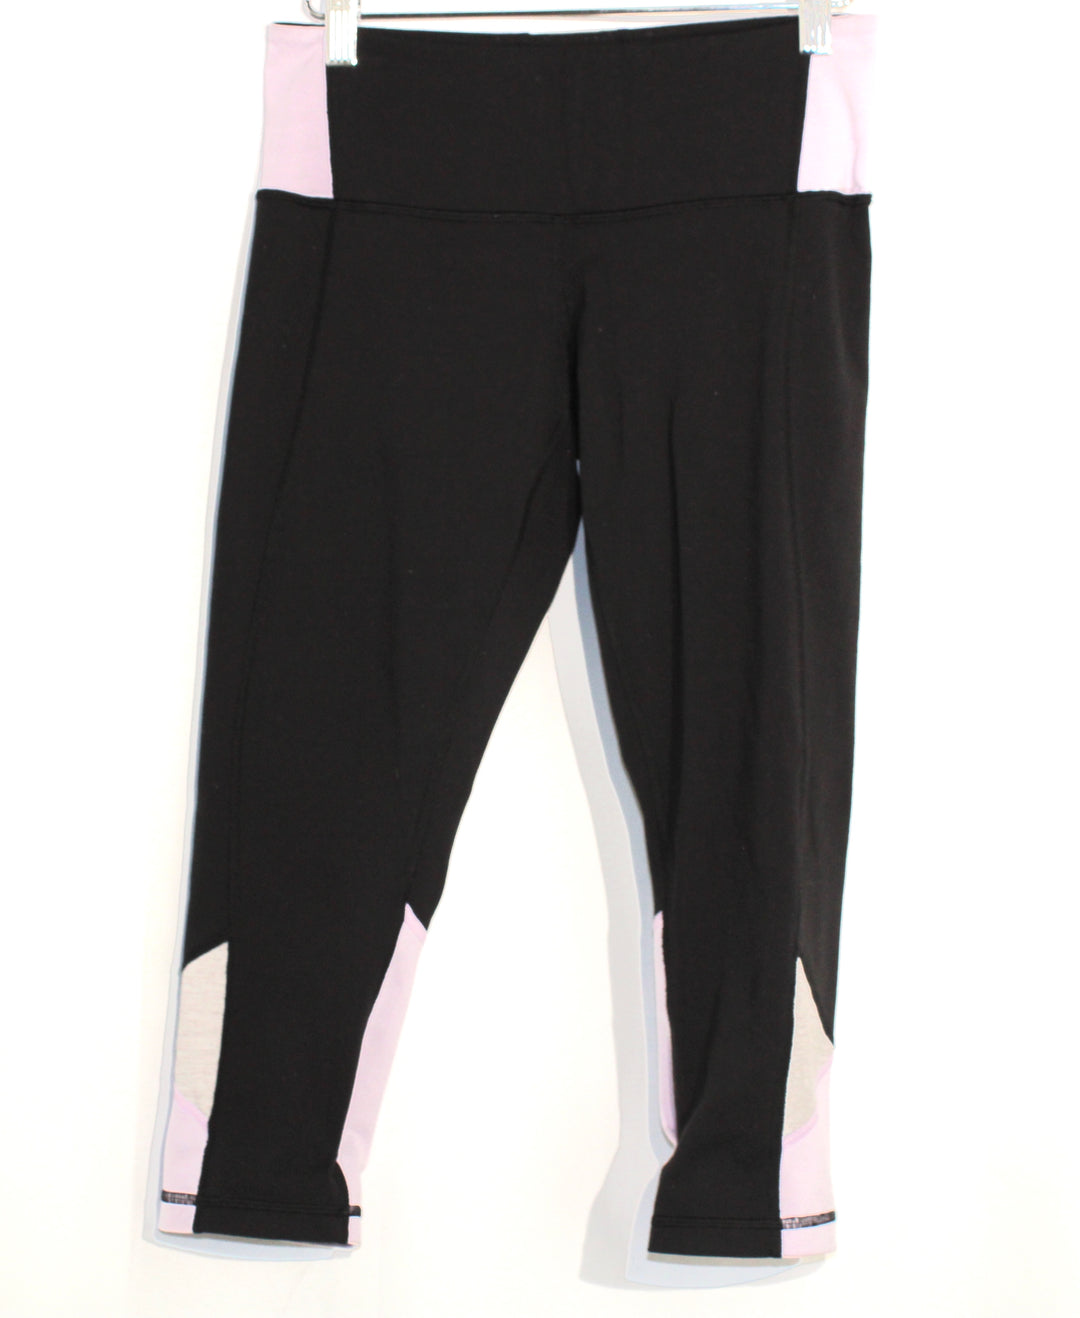 Primary Photo - BRAND: LULULEMON <BR>STYLE: ATHLETIC CAPRIS <BR>COLOR: BLACK LILAC<BR>SIZE: 6 <BR>SKU: 262-262101-1012<BR><BR>GENTLE WEAR AS IS <BR>DESIGNER FINAL